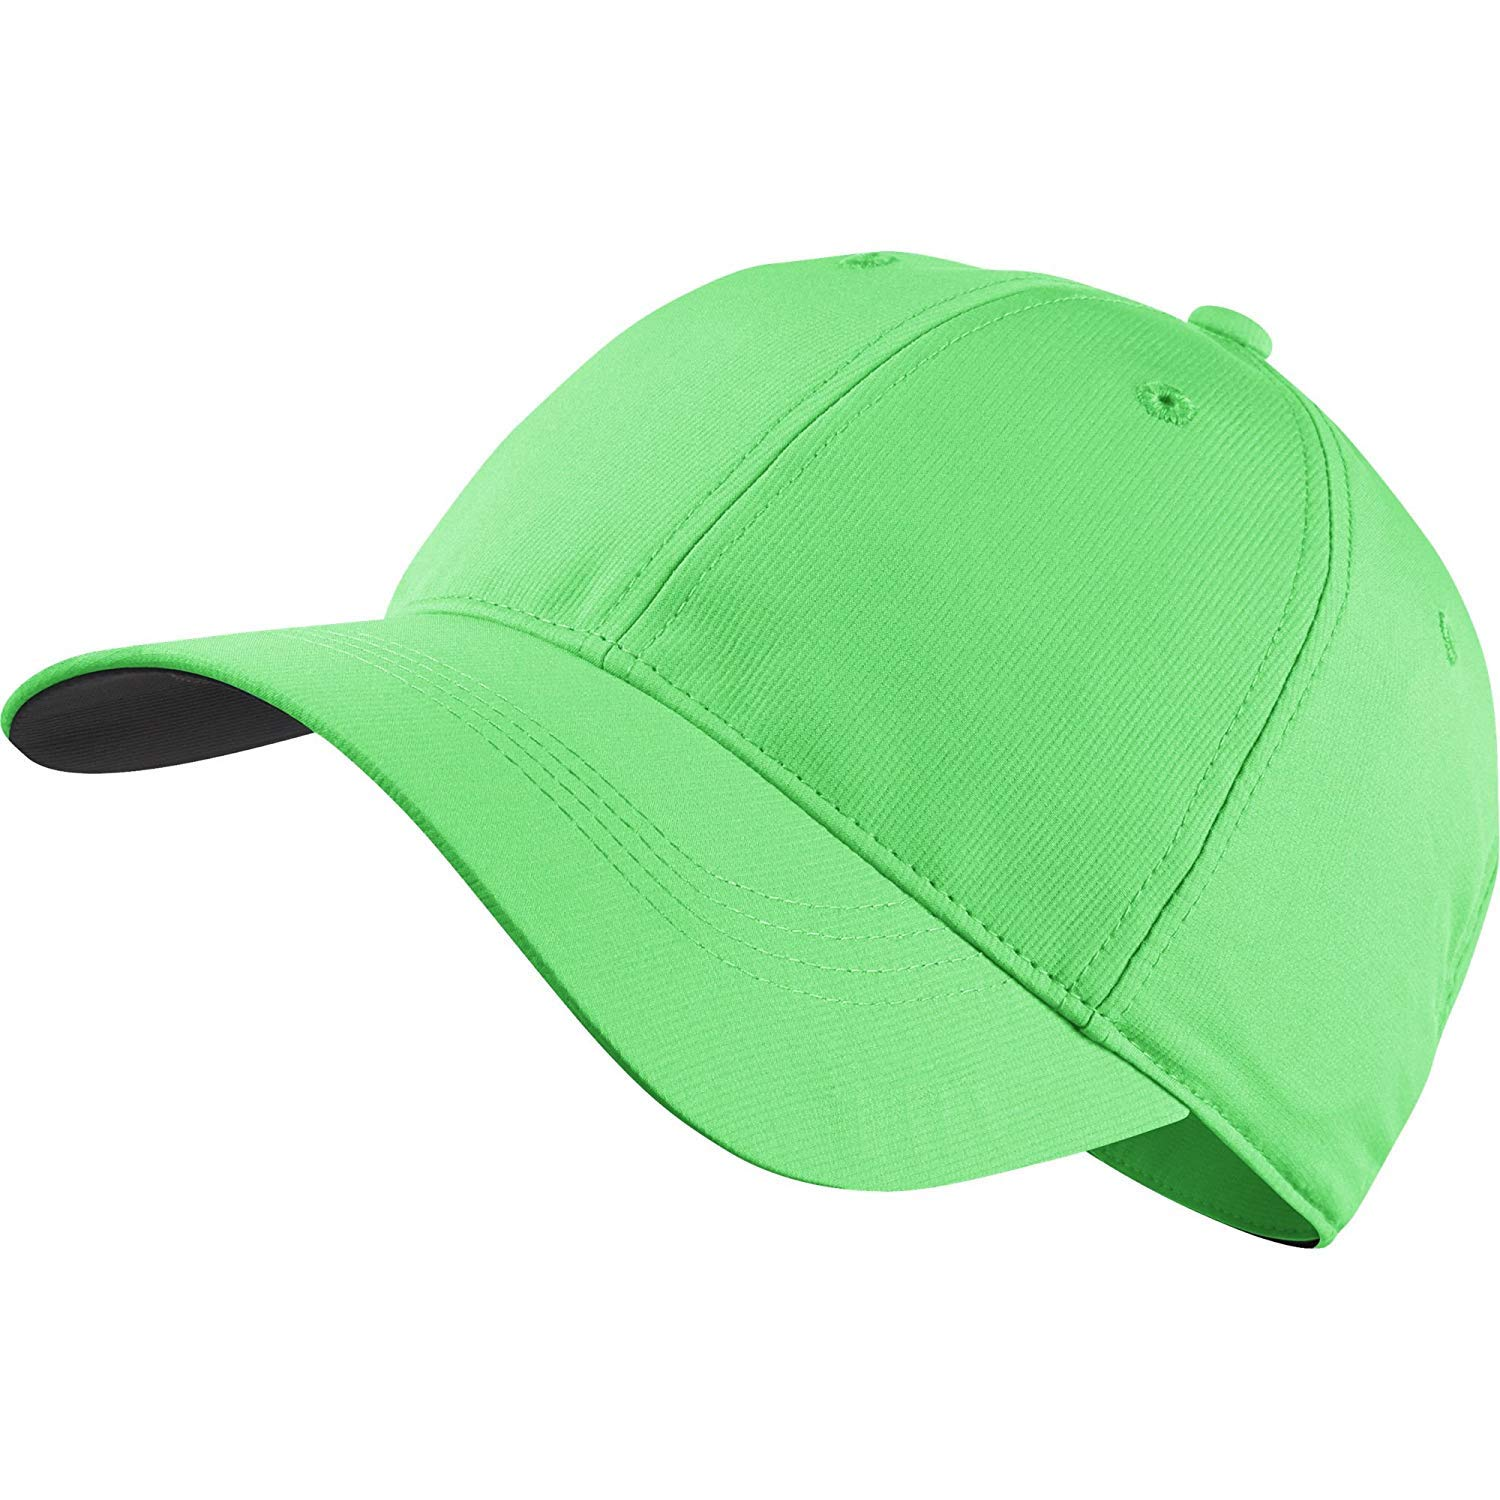 8ba8249a5fa60 Amazon.com   Nike Golf Legacy Swoosh 91 Tech Golf Cap 2017 Adjustable  Electro Green White Swoosh